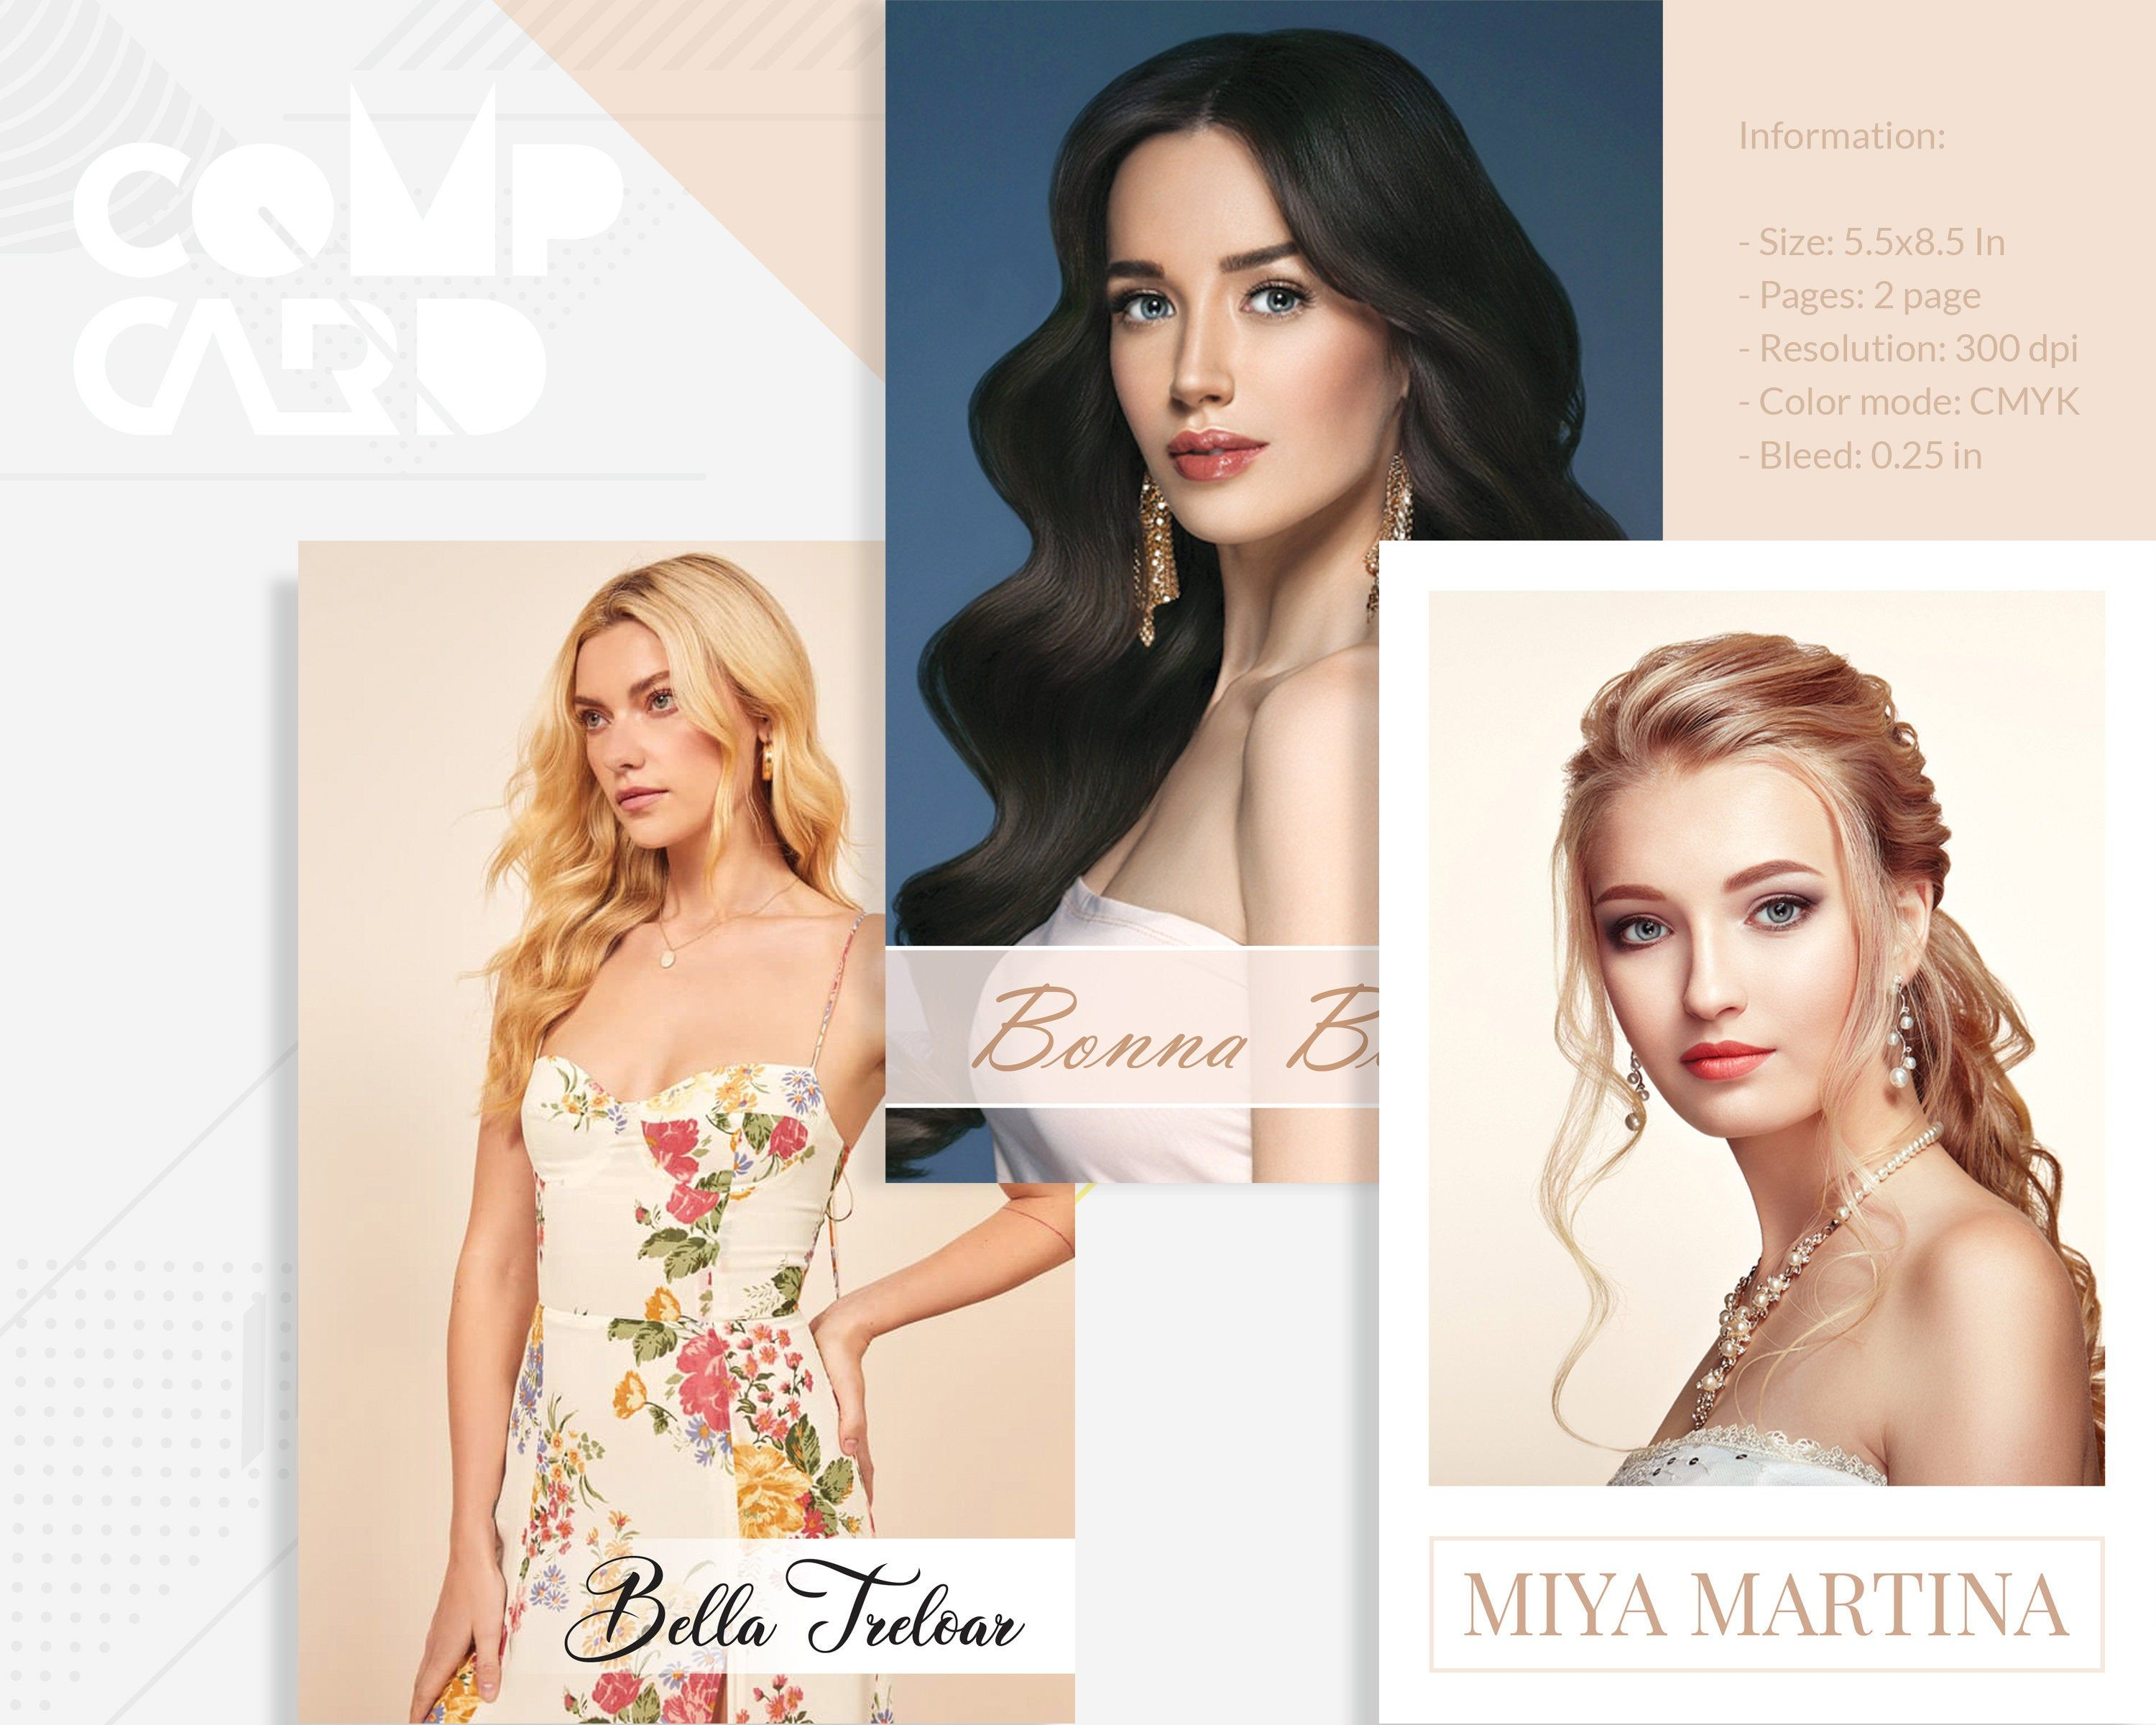 3 Modeling Comp Card Template Model Comp Card Photoshop Elements Ms Word T Model Comp Card Minimalist Business Cards Professional Business Cards Templates